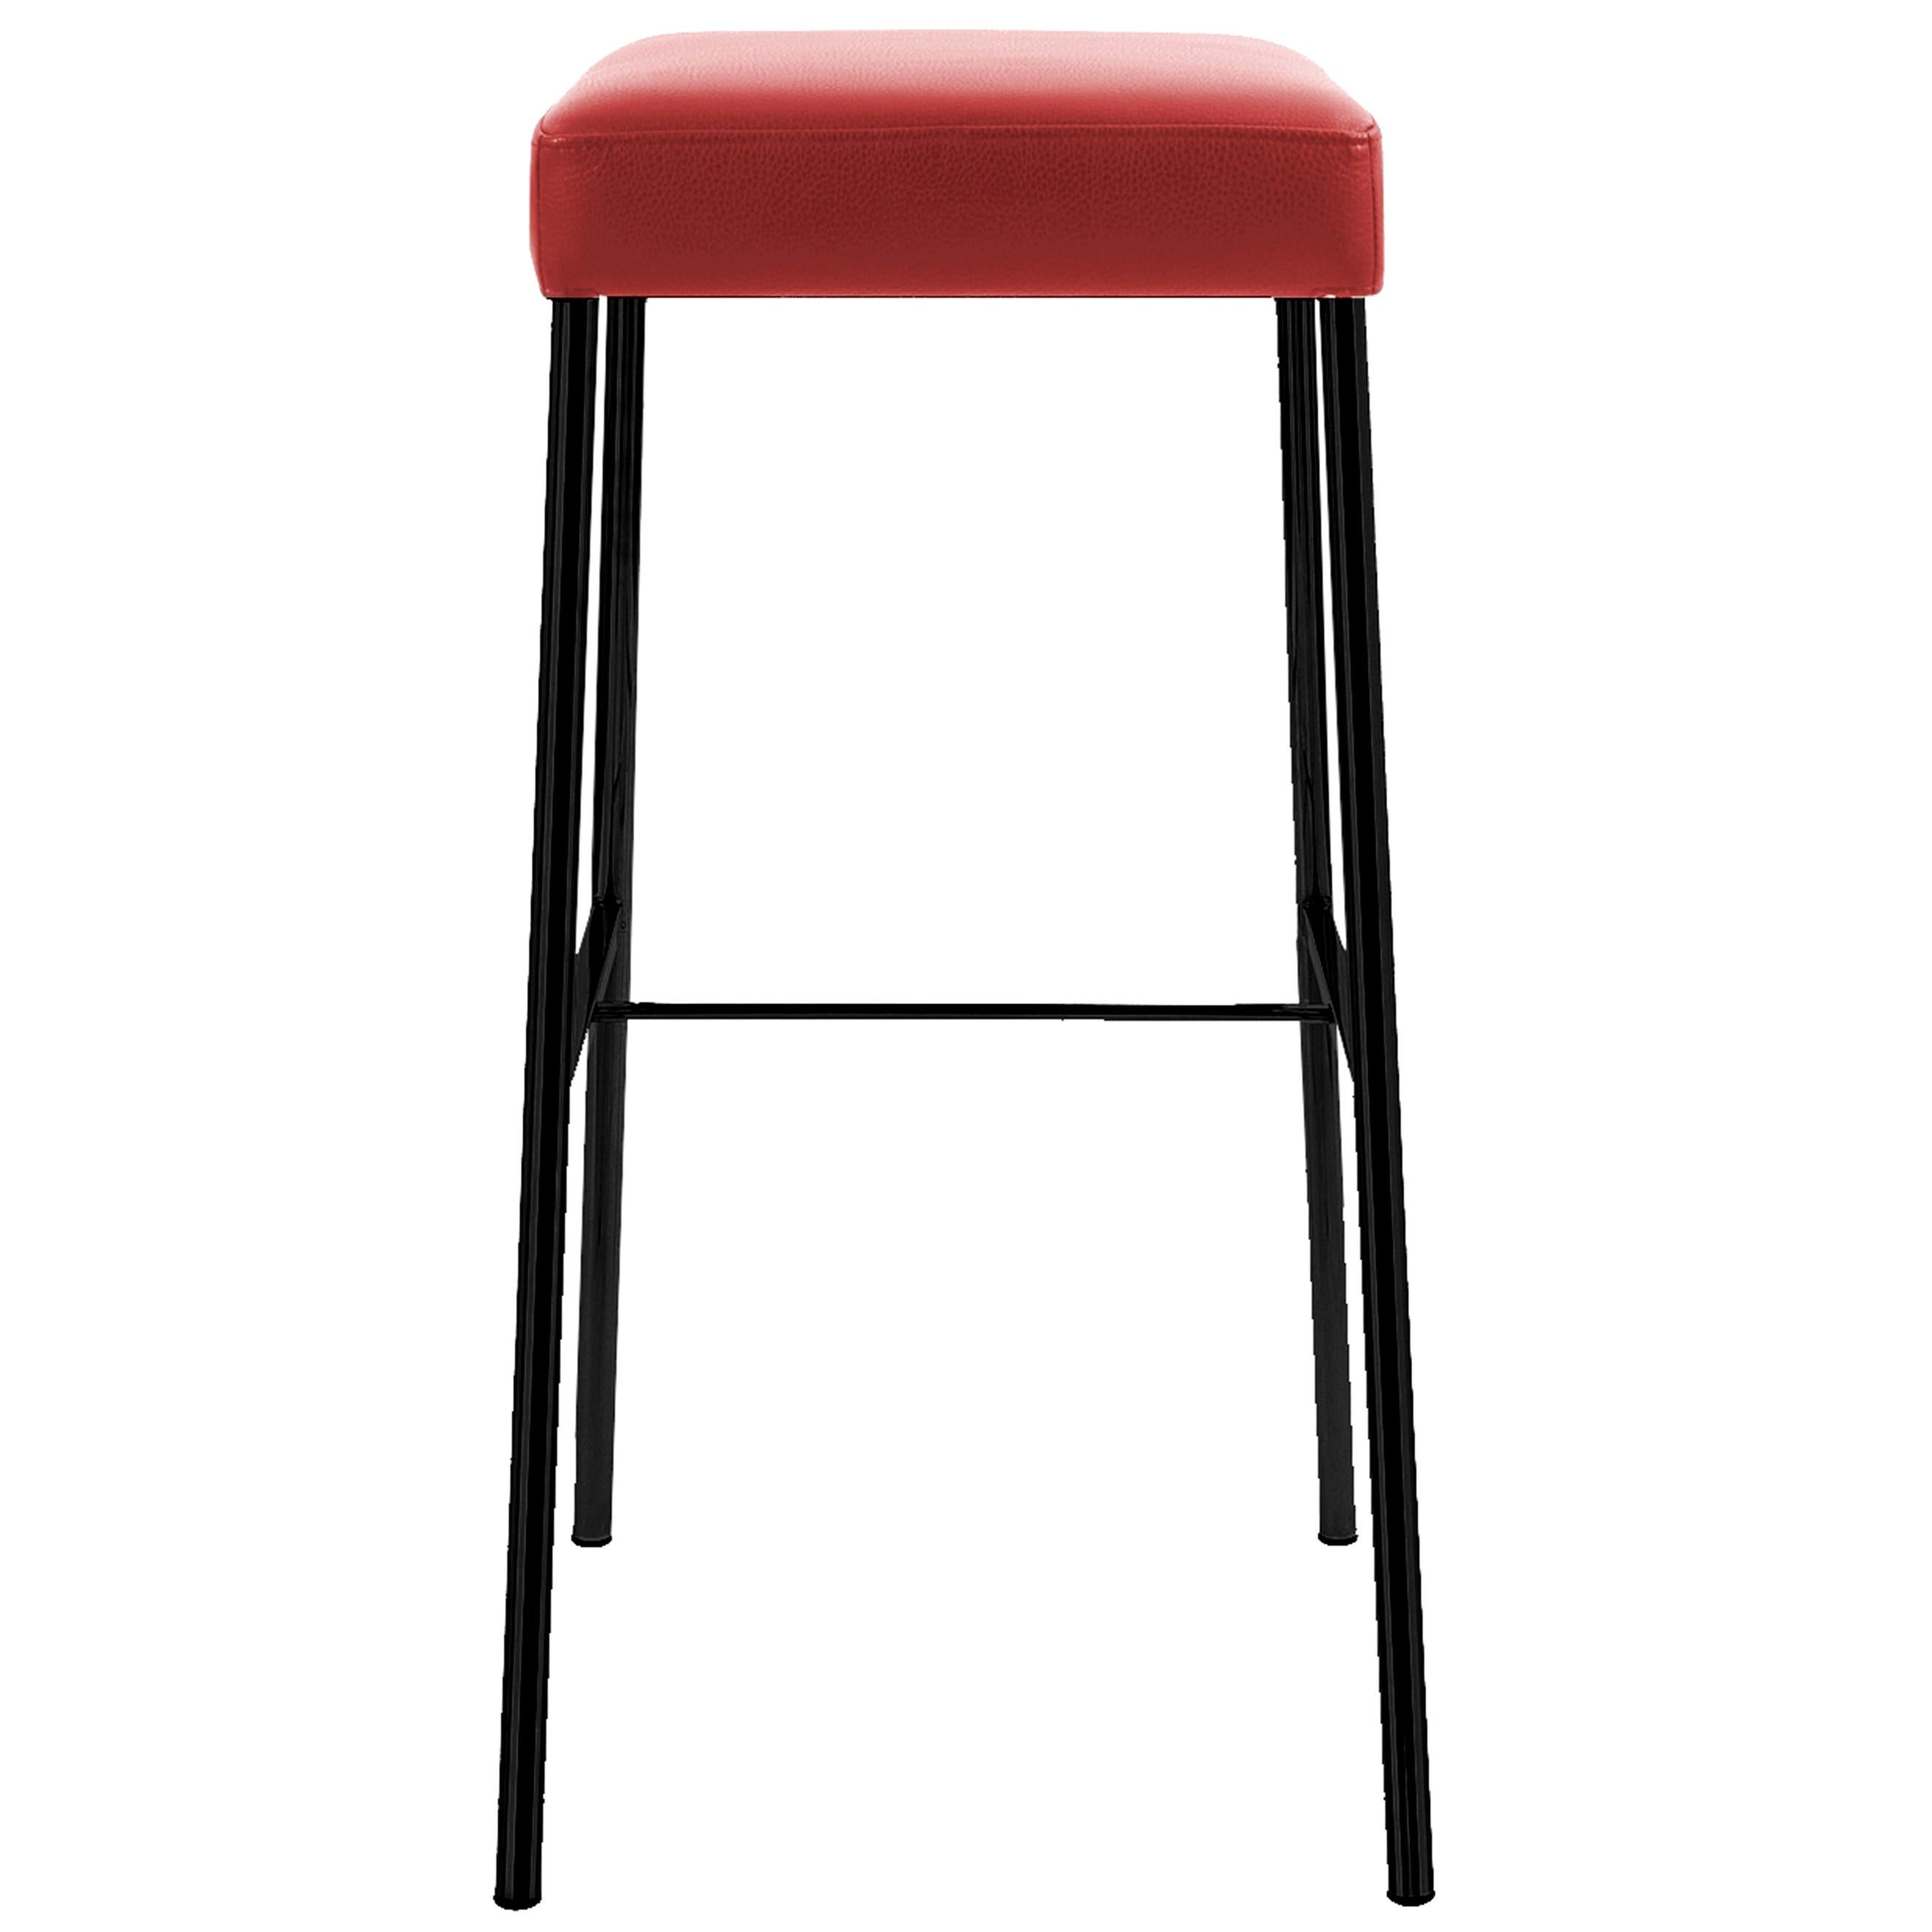 GLOOH Bar Stool without Backrest in Black Leather by KFF